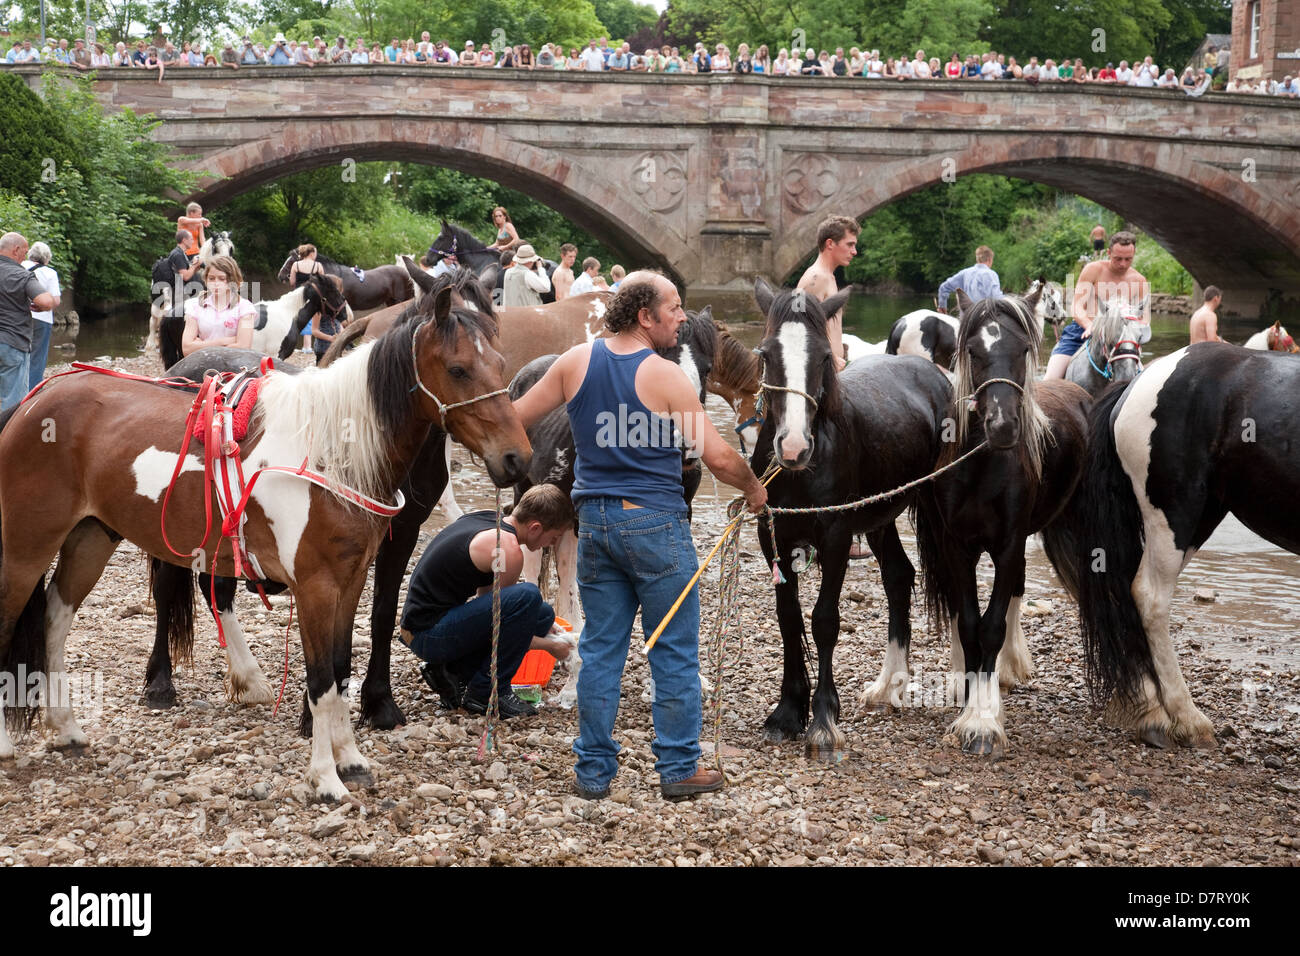 Horses by the river at the Appleby Fair, an annual gathering of Gypsy and Traveller communities in Cumbria, England Stock Photo